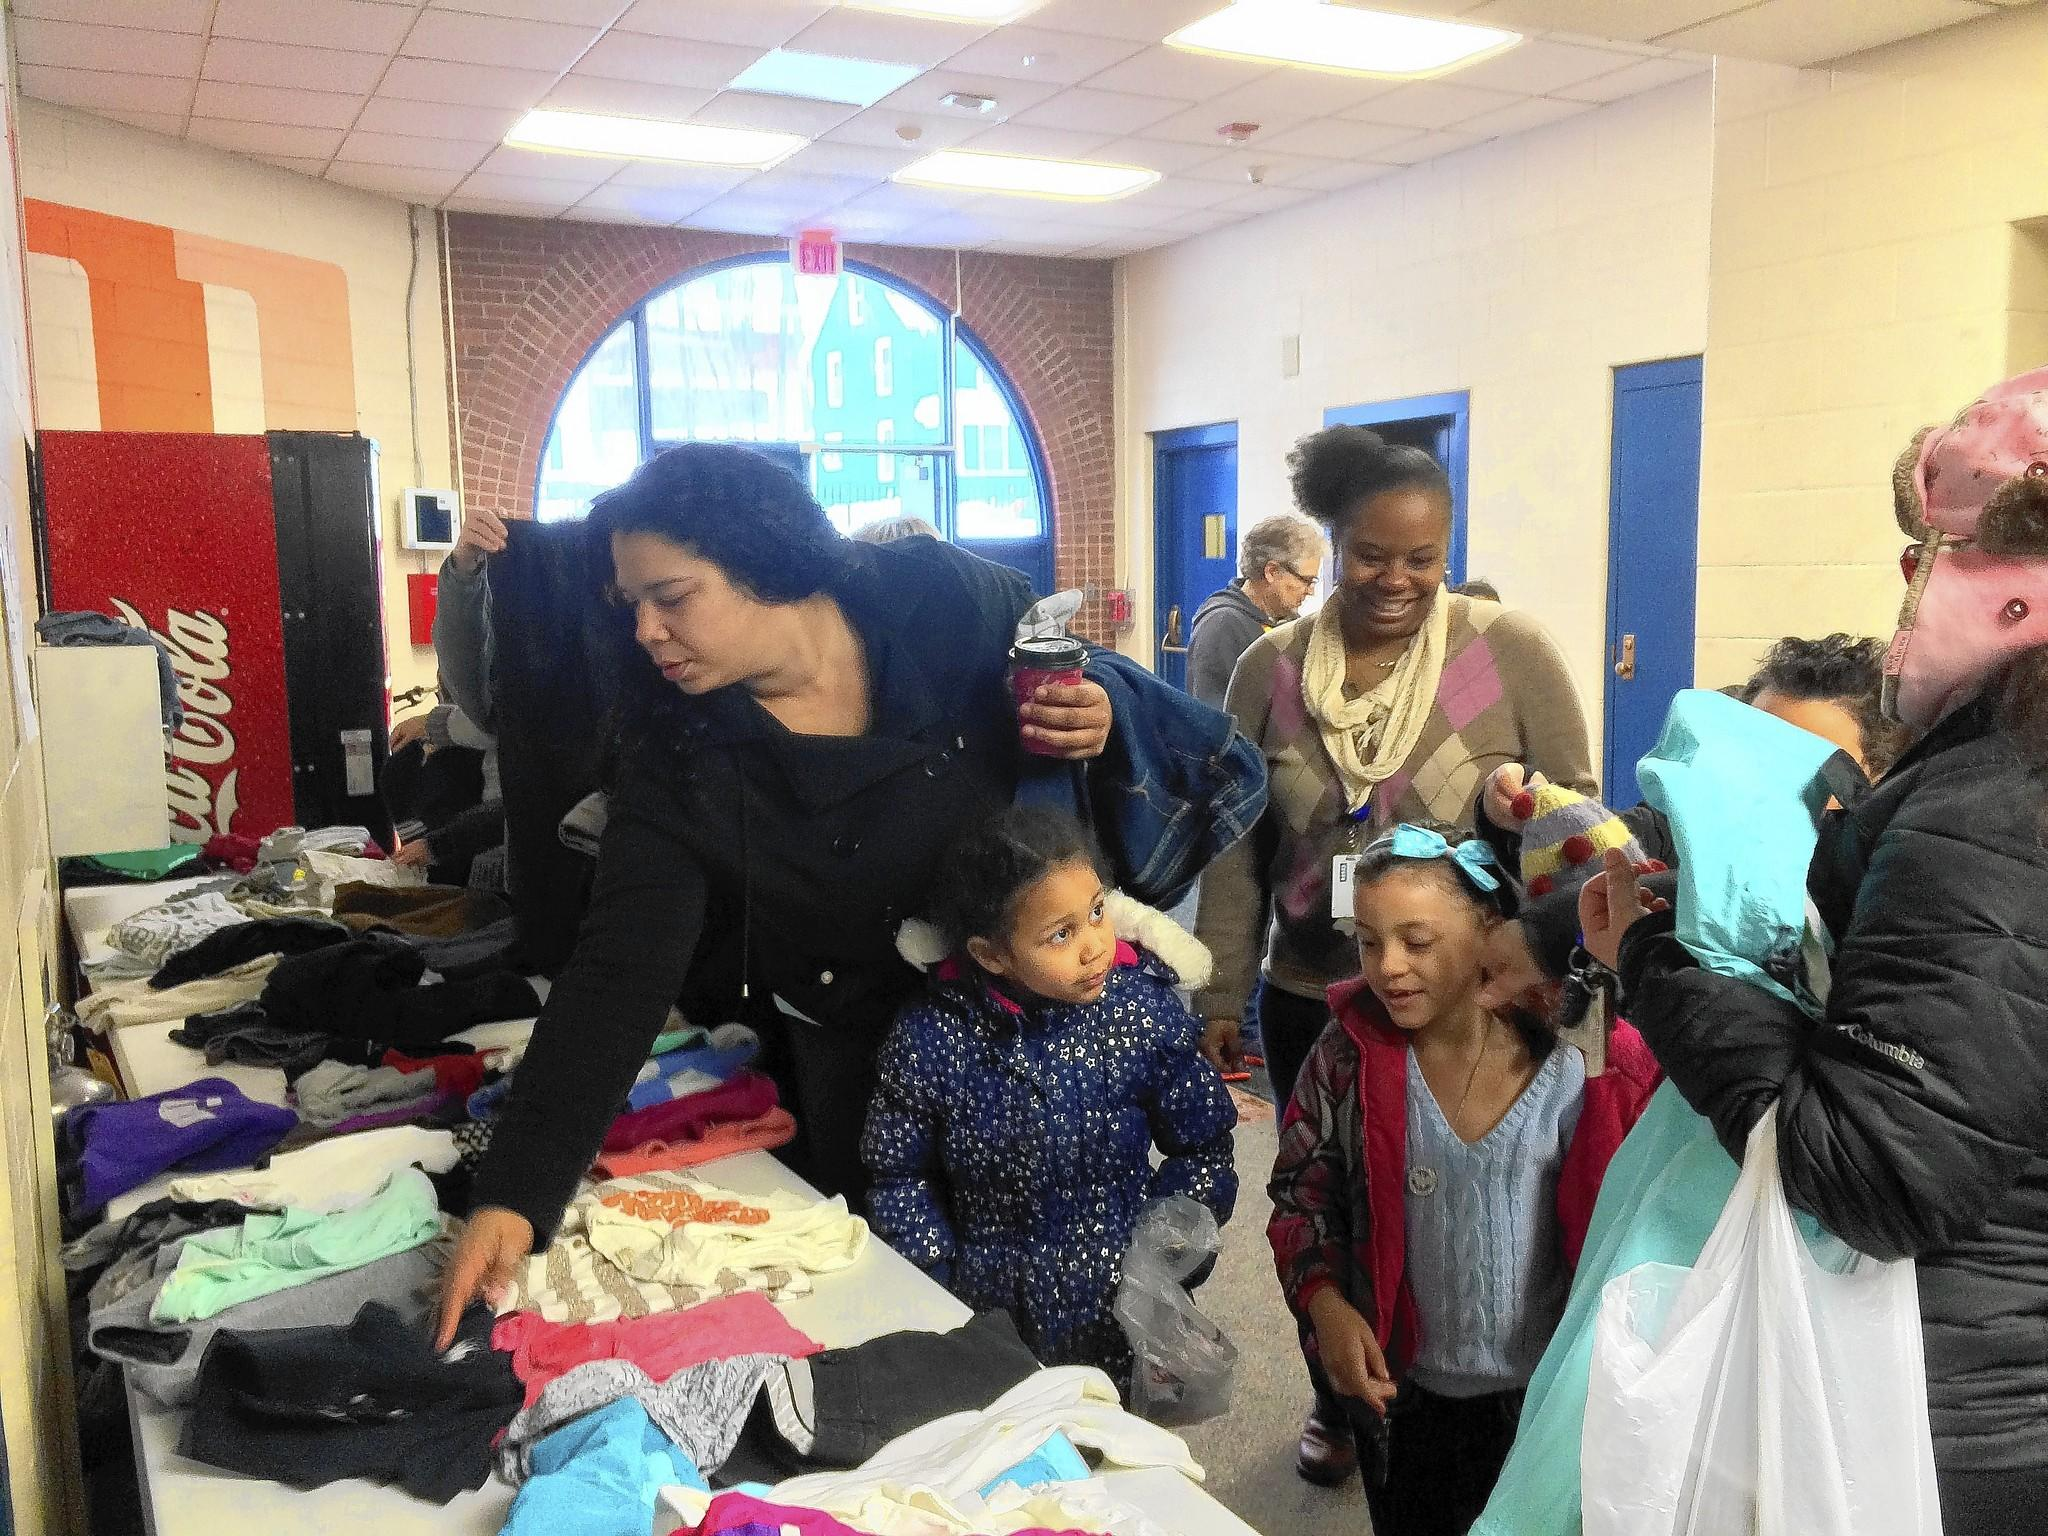 Tasha Armstrong, left, looks through items of clothing donated for the Washington Wears event with her daughter Makayla Rivera.